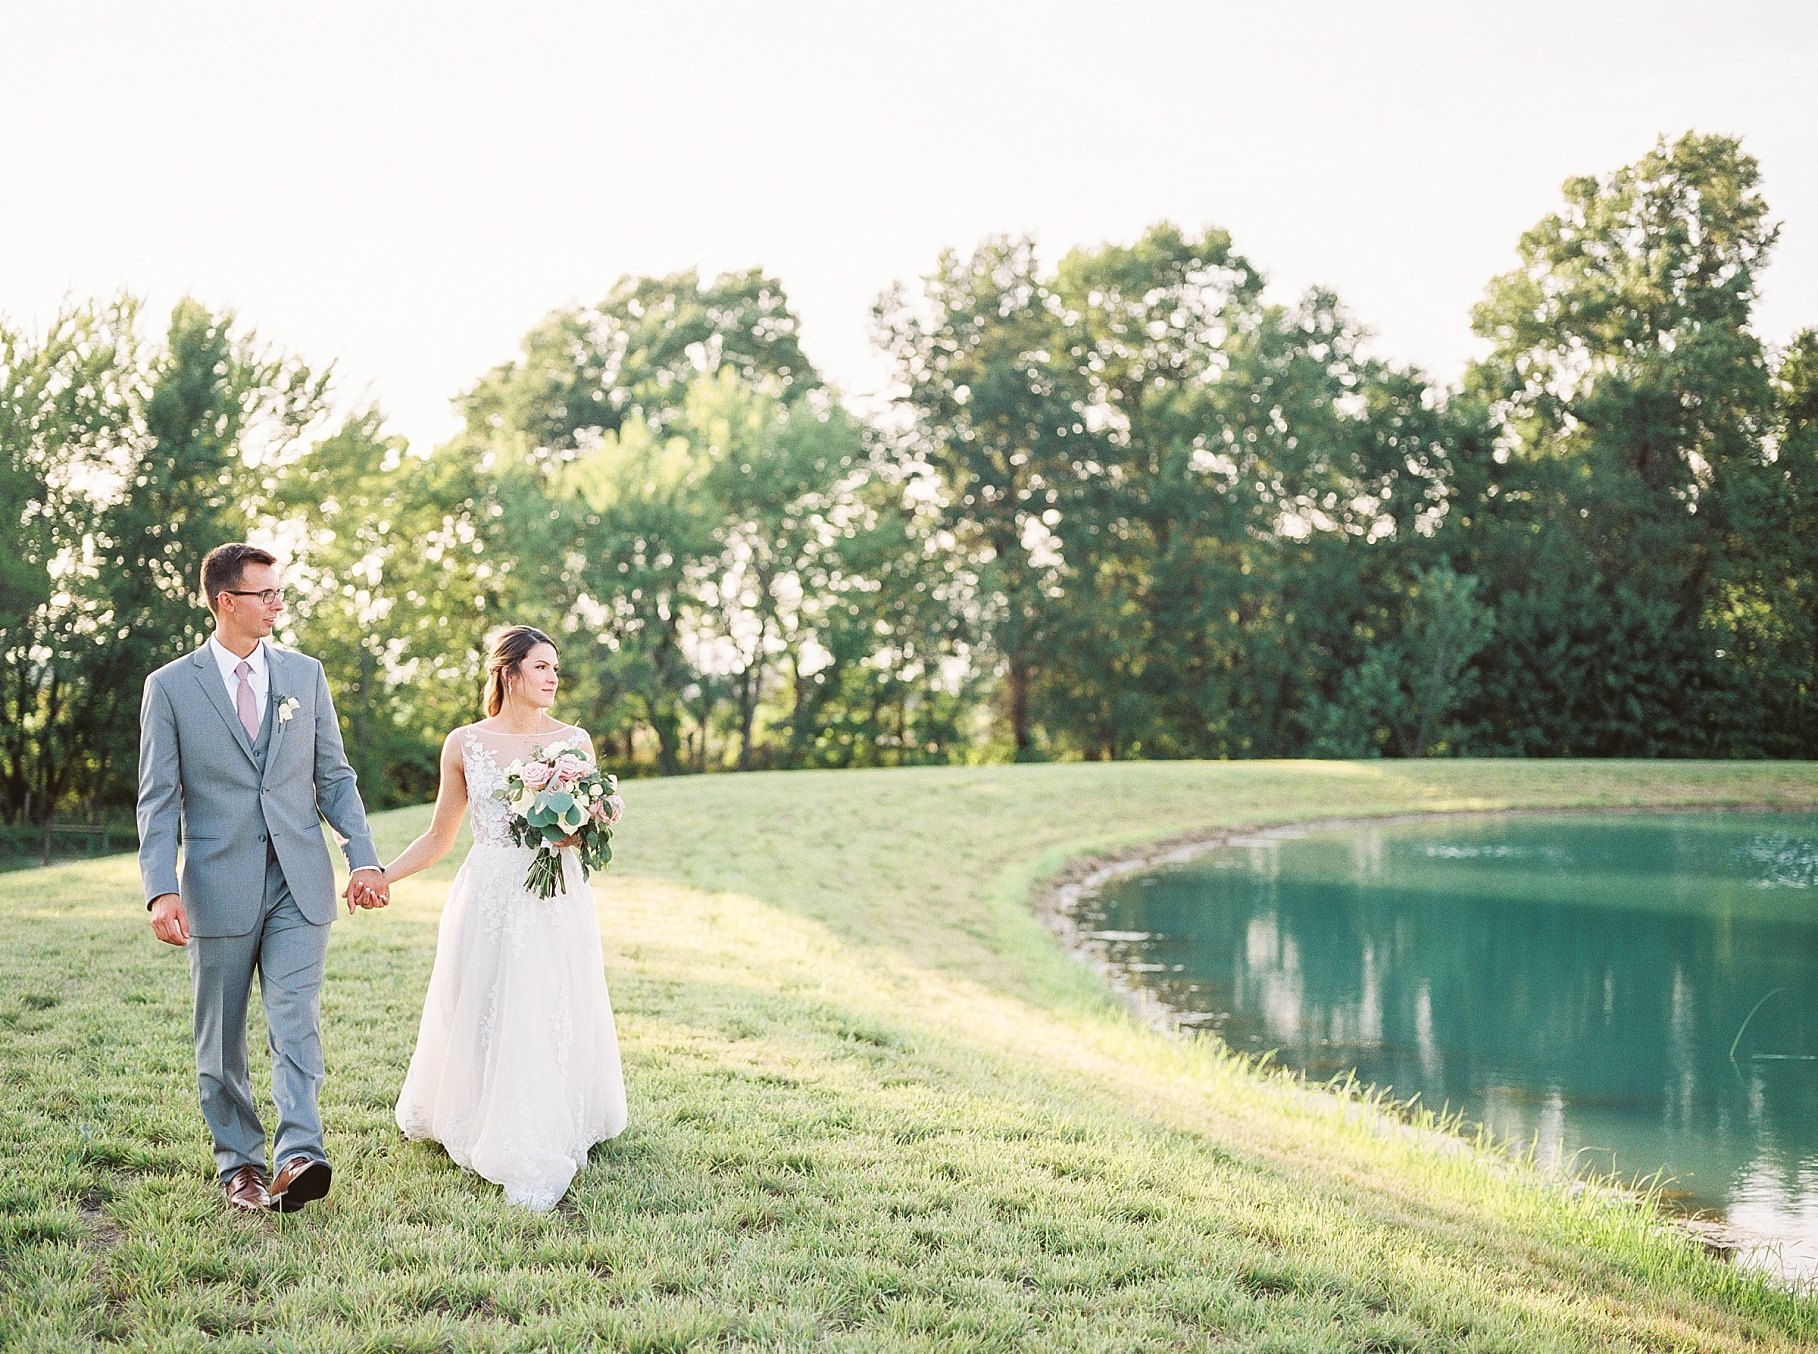 Classic Quartz, White, and Deep Green Wedding at Emerson Fields by Kelsi Kliethermes Photography Best Columbia Missouri and Maui Hawaii Wedding Photographer_0027.jpg